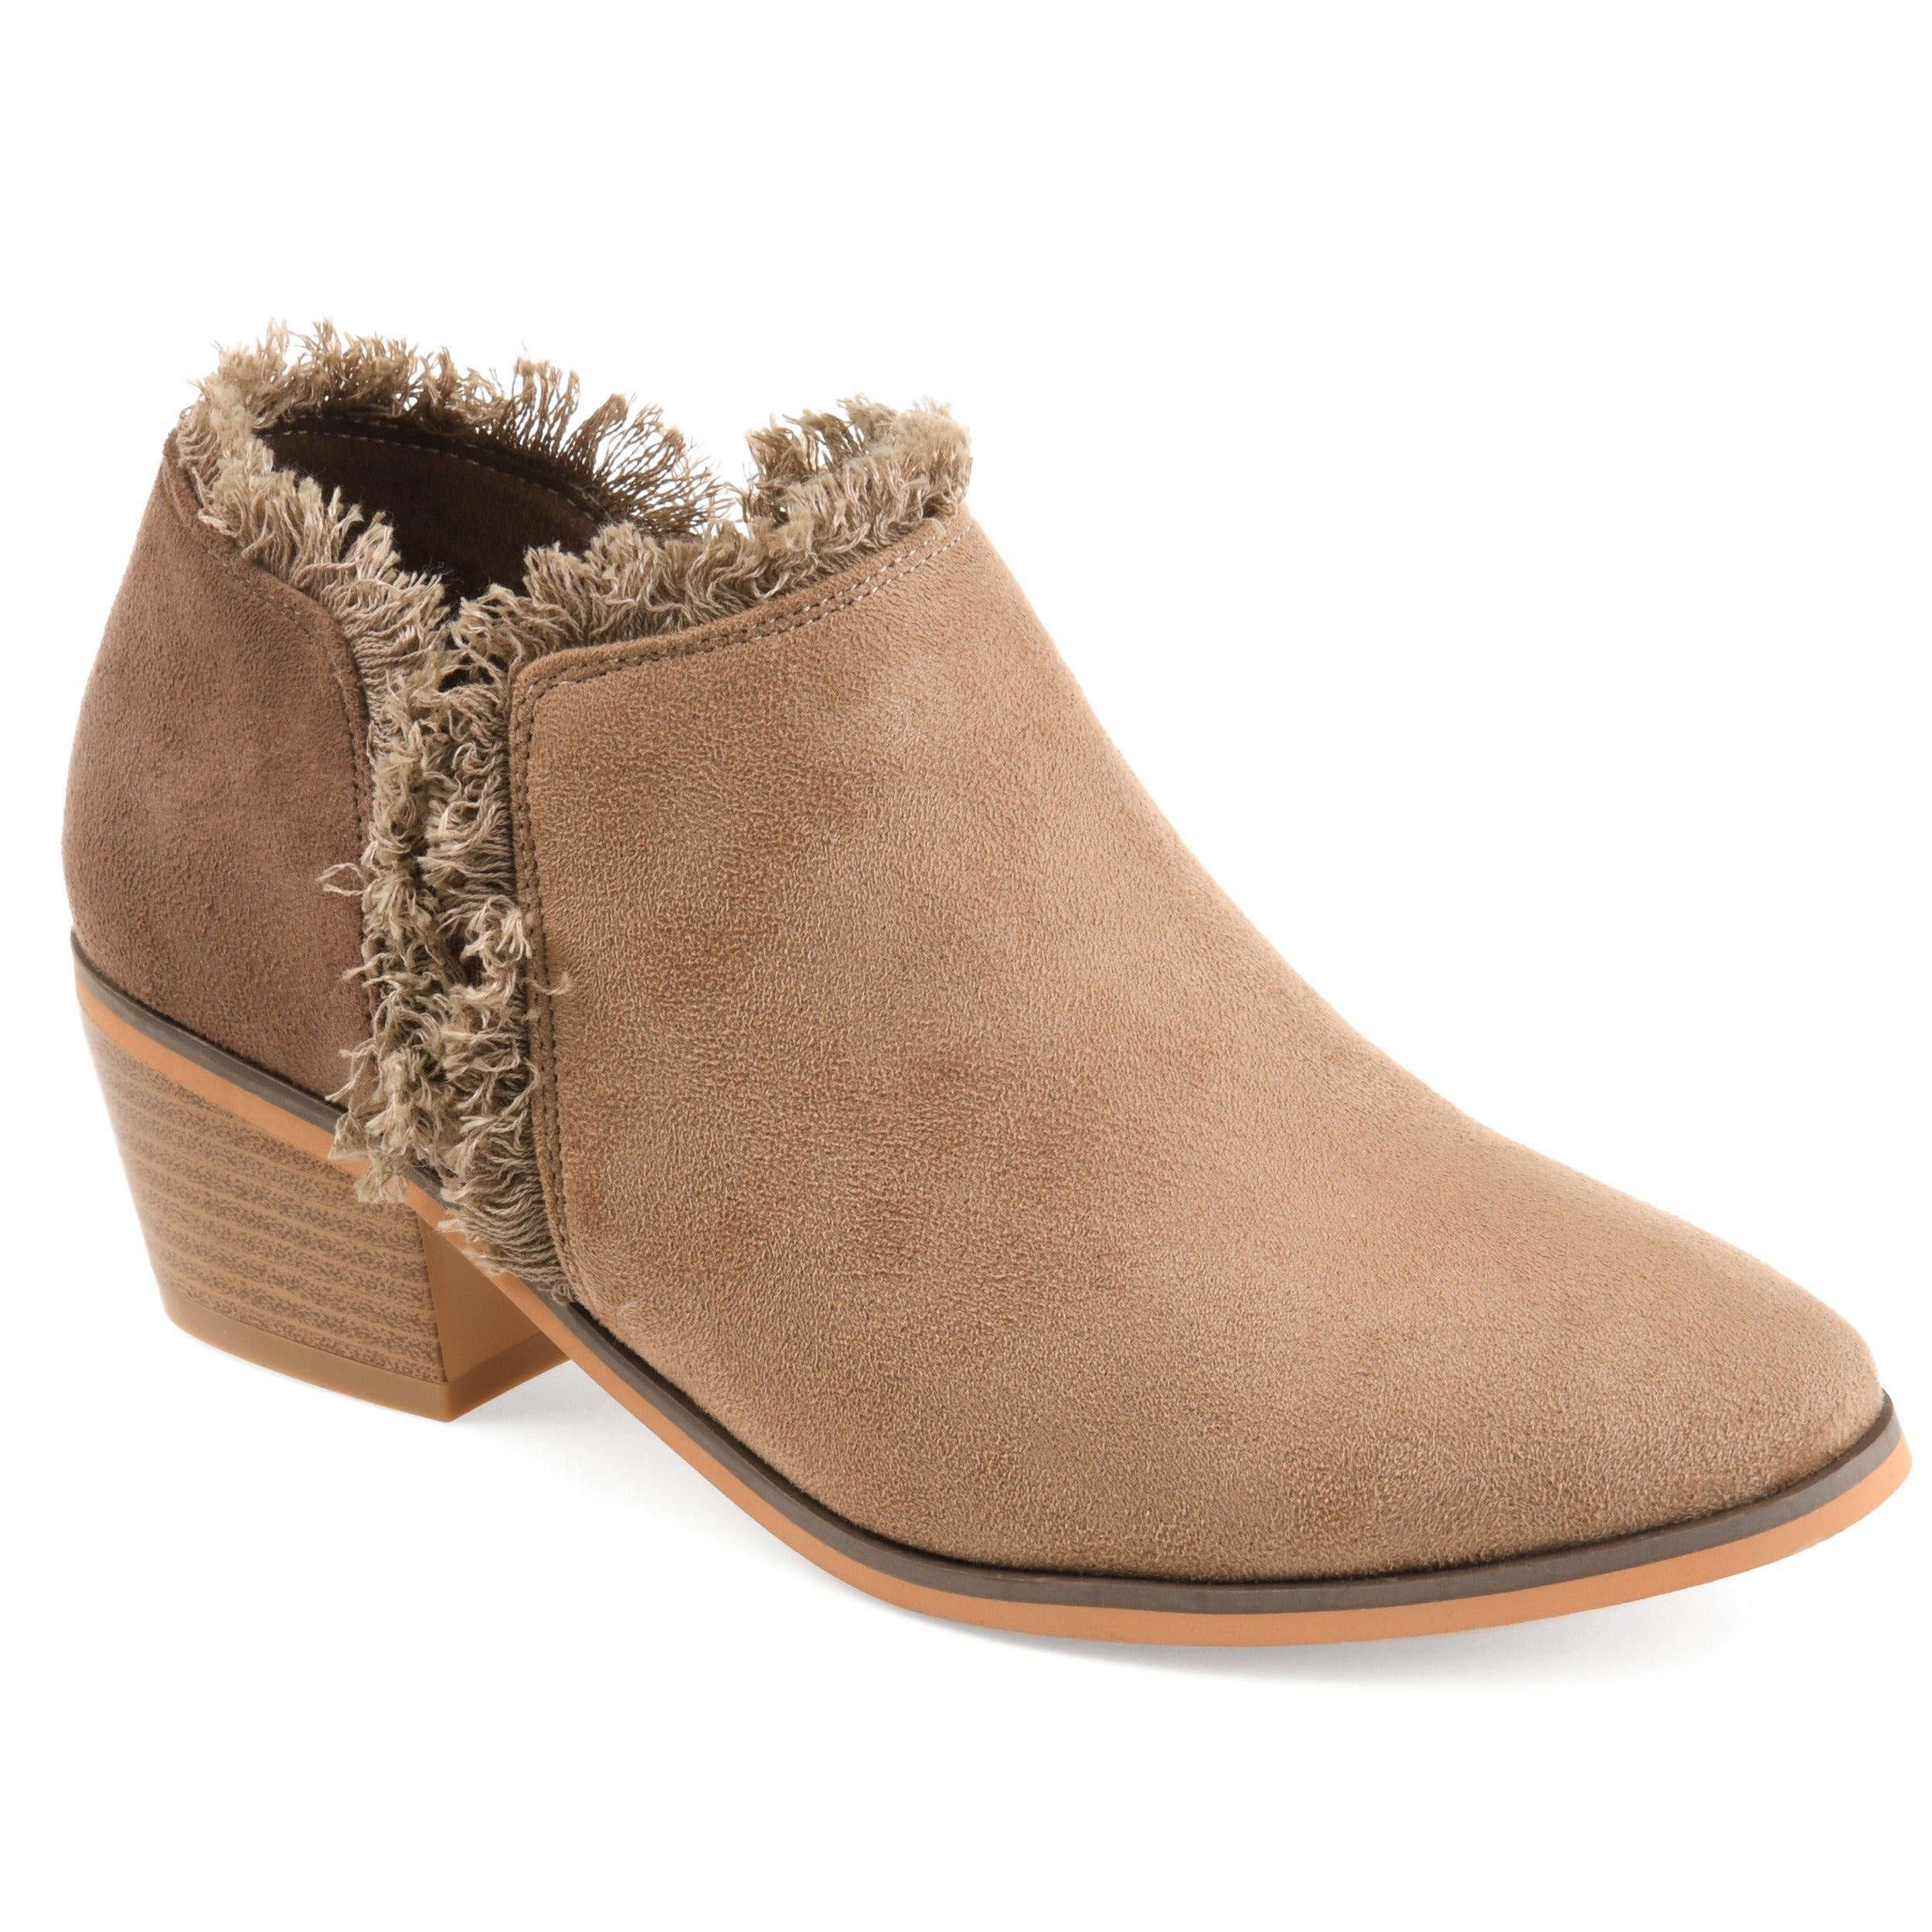 daea97d226631a Journee Collection Women's 'Moxie' Fringe Faux Suede Ankle Booties ...